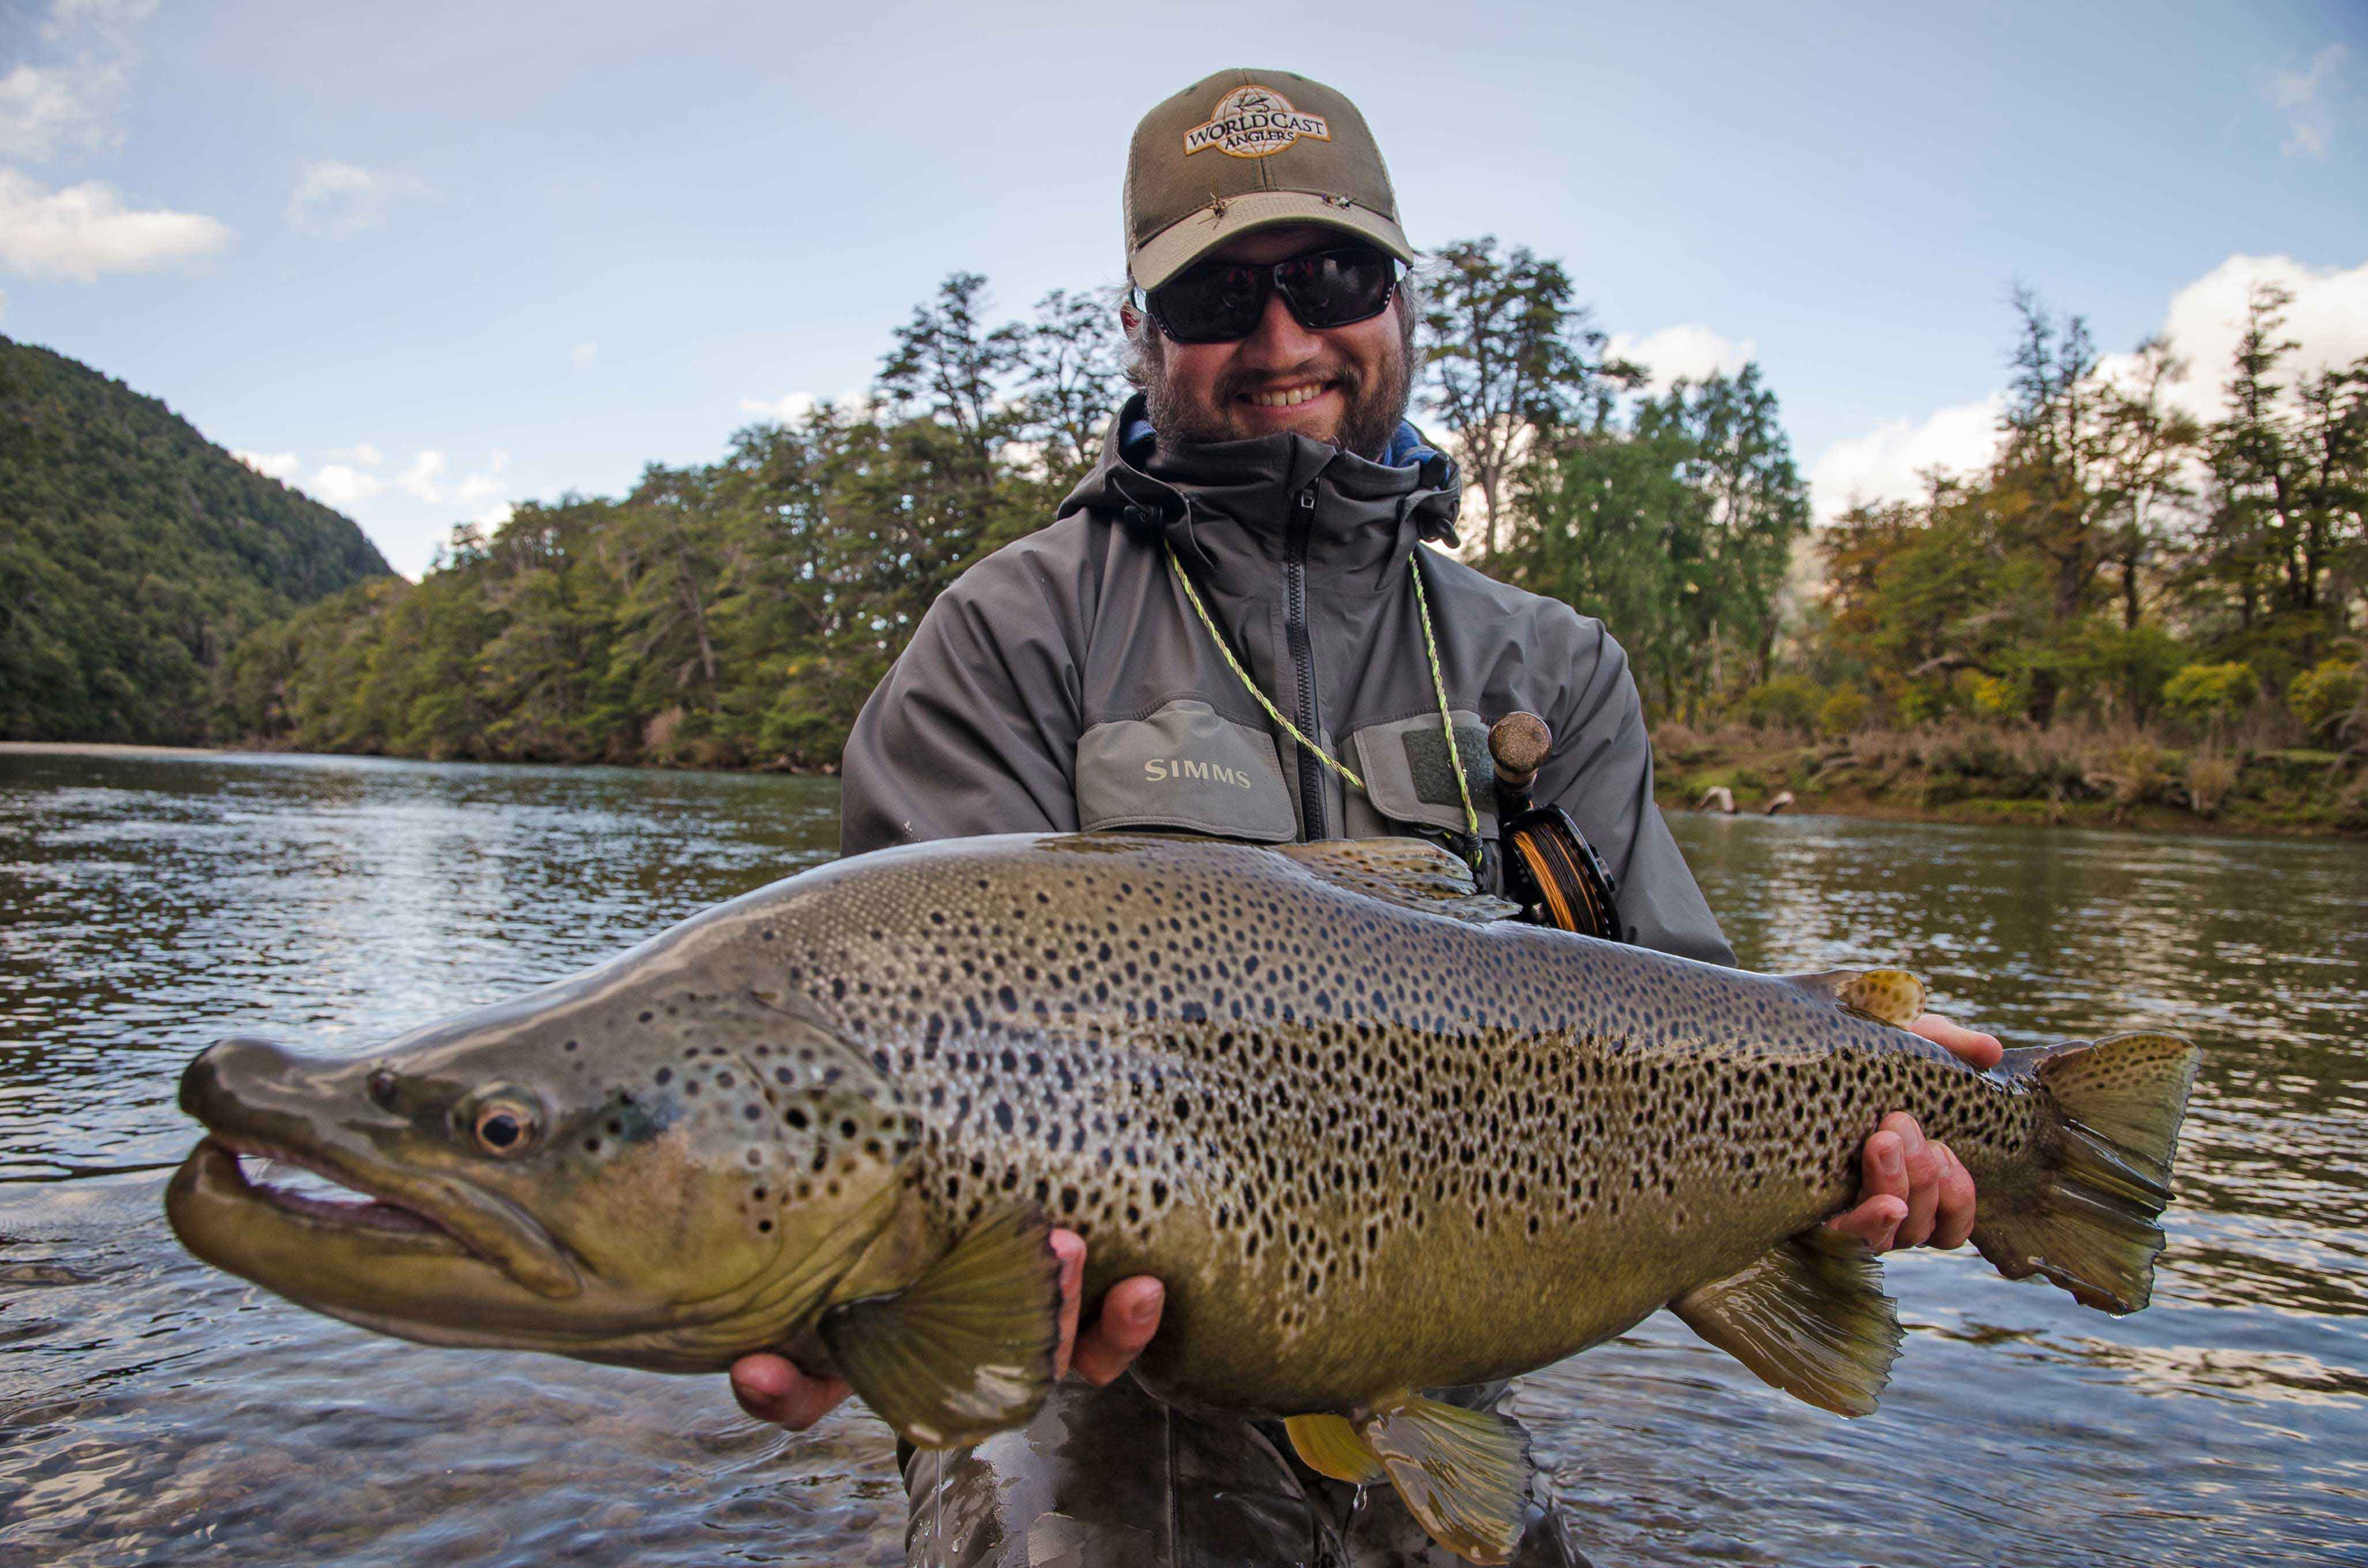 Patagonia hosted trip report worldcast anglers for Big fish characters